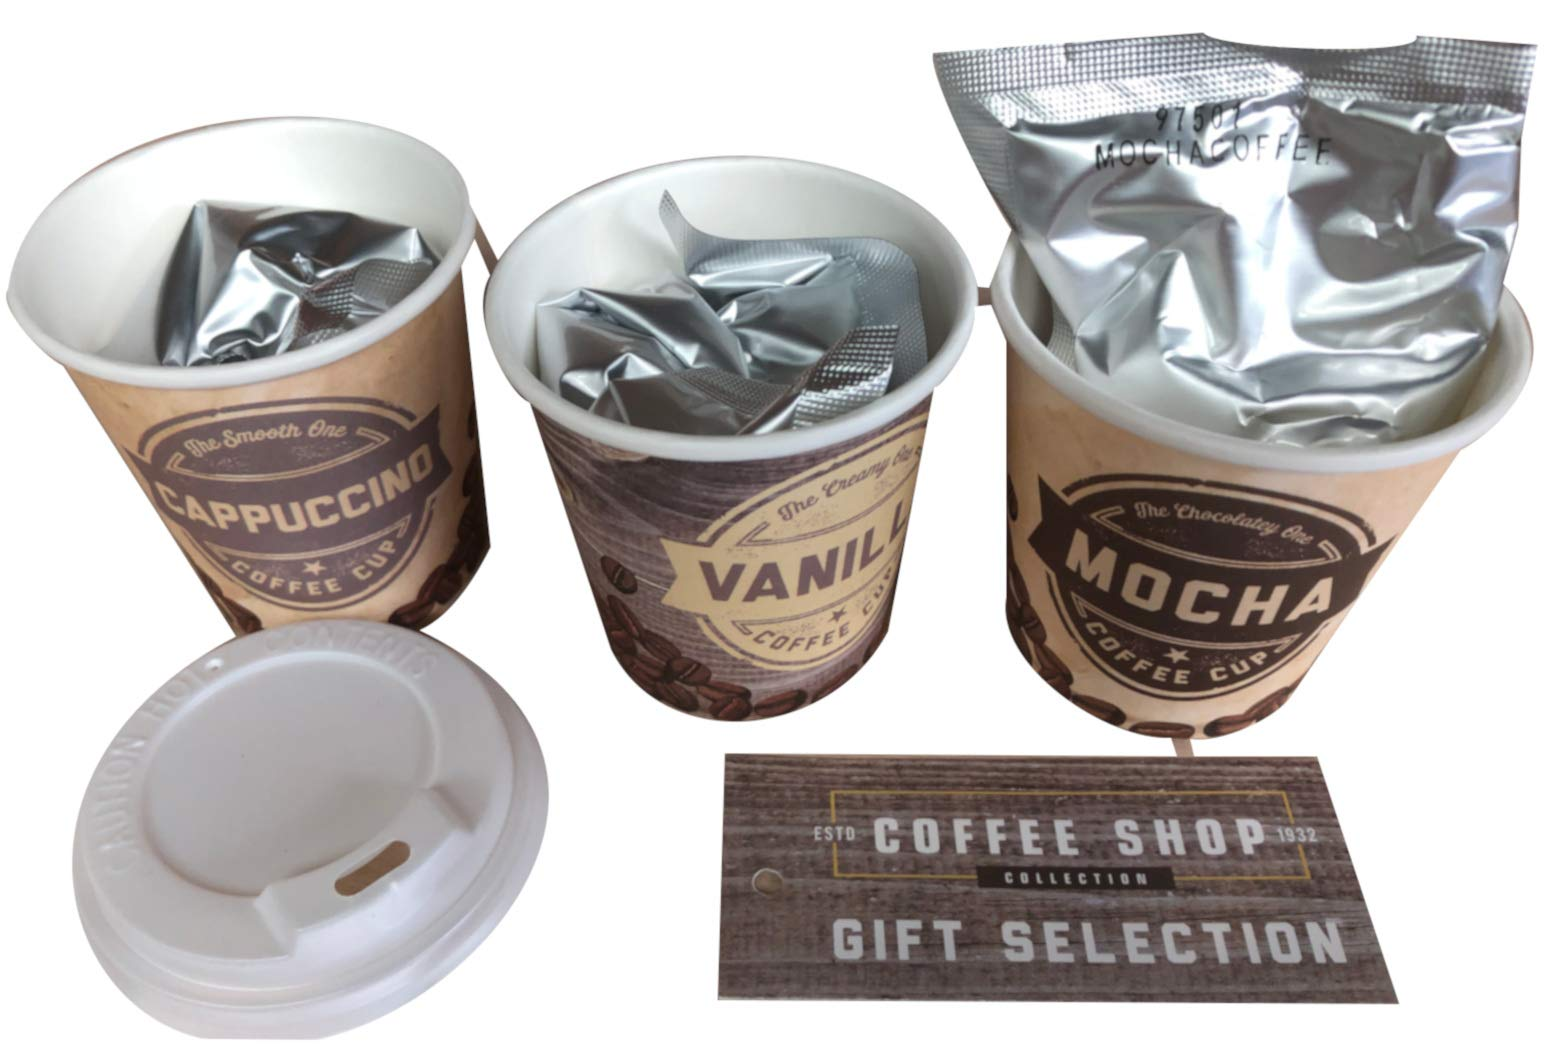 Coffee Tasters Bundle – 4 Coffee Syrups & 6 Travel Cup Collection in 2 Gift Set Boxes > Hazelnut, Vanilla, Caramel, Cinnamon , Mocha, Cappuccino & Latte. A Perfect Seasonal Collection Gift at Anytime